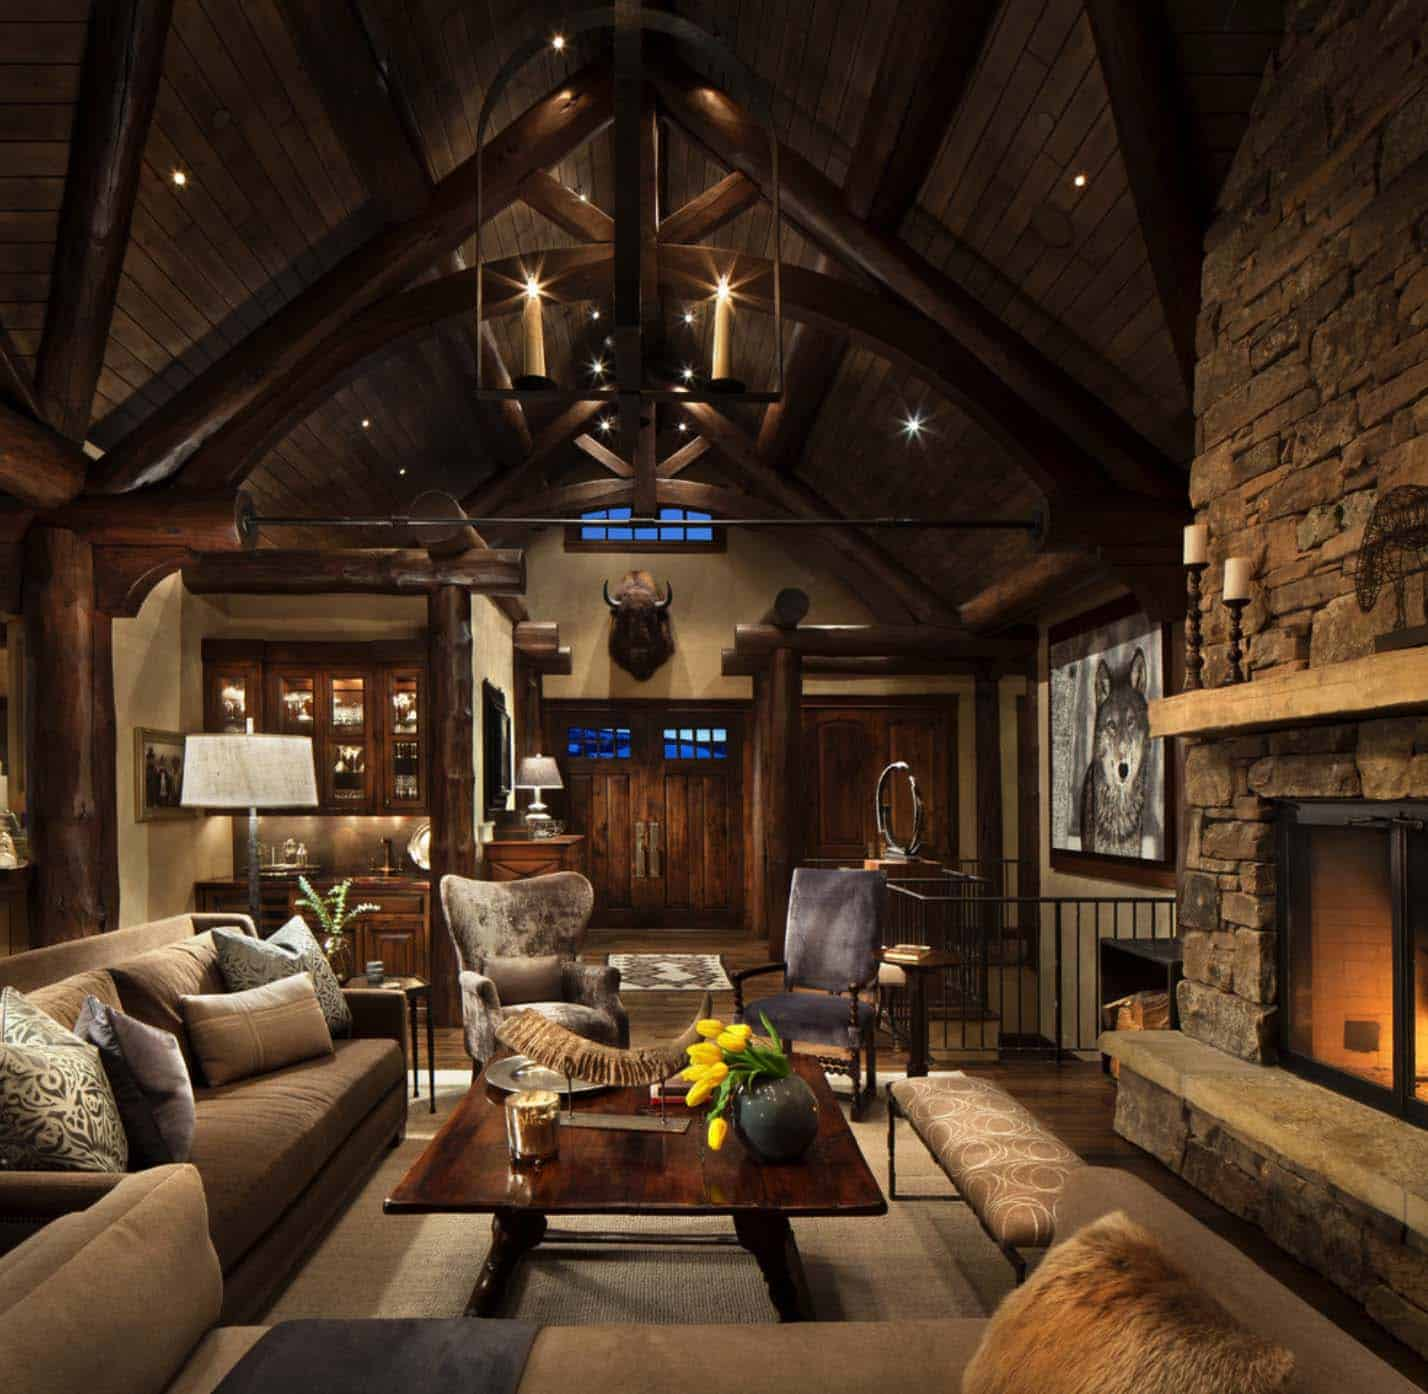 21 Fabulous Rustic Glam Living Room Decor Ideas: Exquisite Mountain Home Remodel Mixes Rustic With Modern